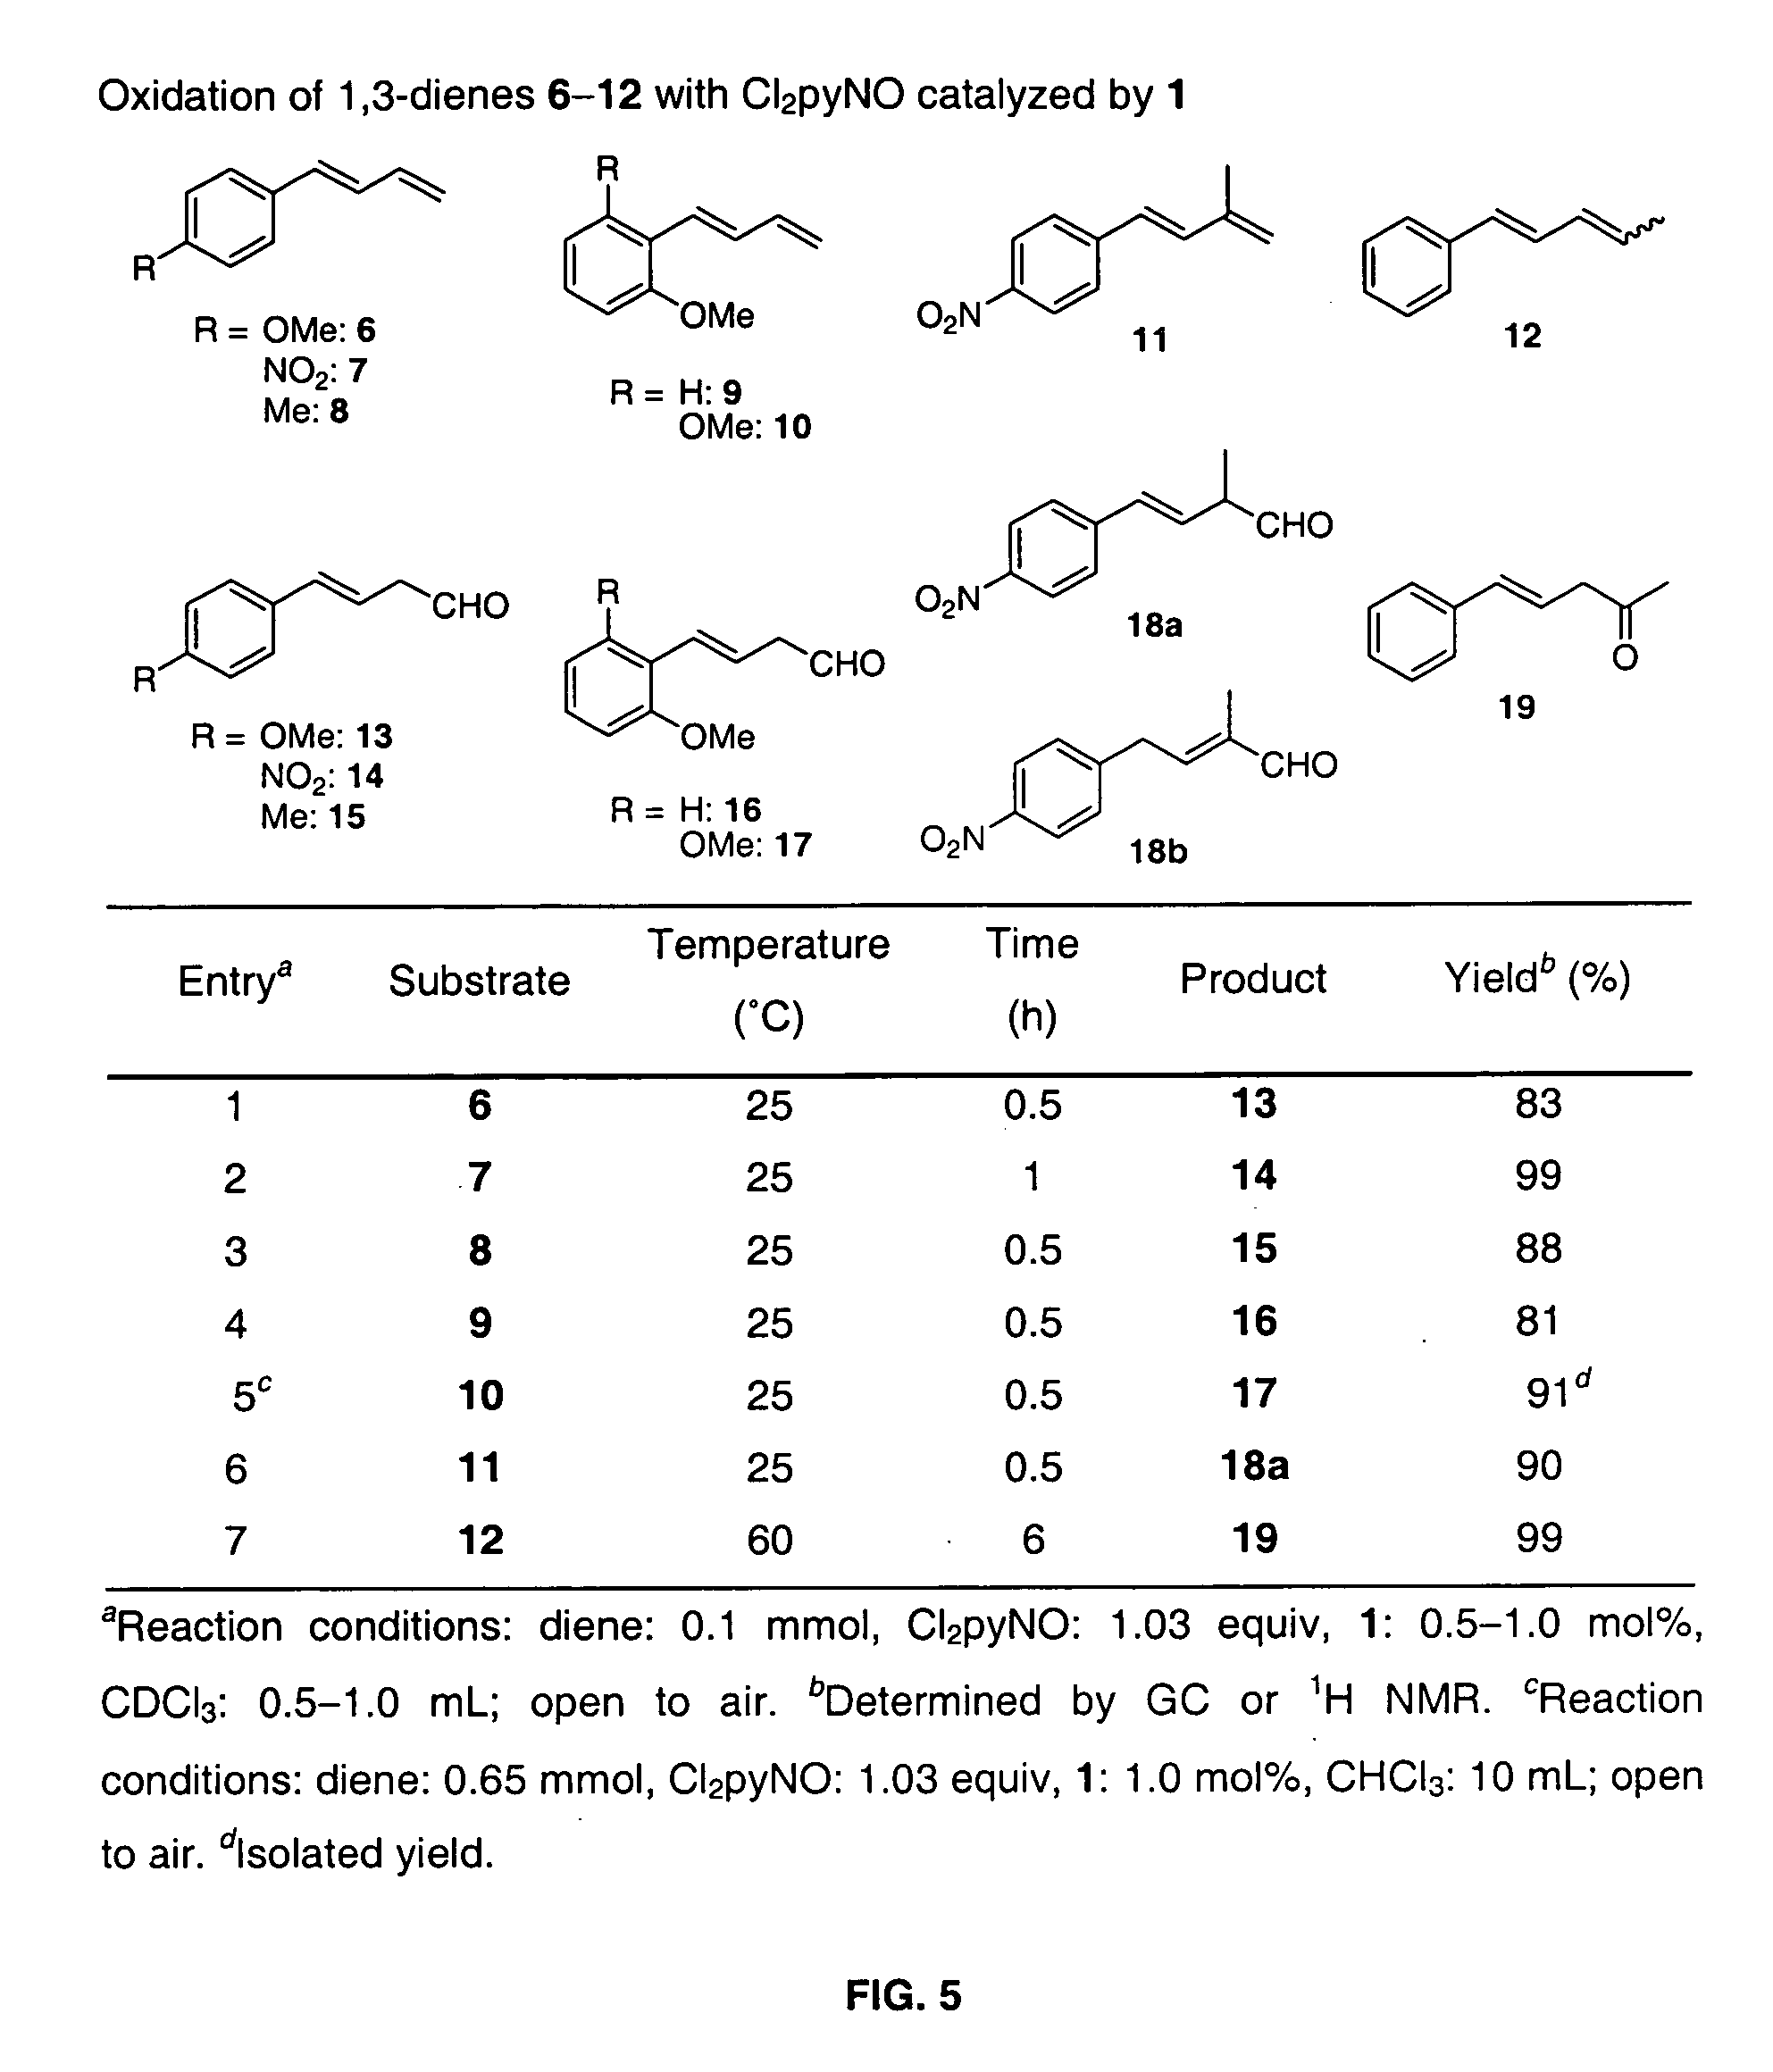 conversion of carbonyl compounds to alkenes Under the appropriate conditions, secondary amines react with carbonyl compounds to form enamines like imine formation, the formation of an enamine also requires an acid catalyst for the removal of water g stork, a brizzolara, h landesman, j szmuszkovicz and r terrell, j am chem soc, 1963, 85, 207– 222.